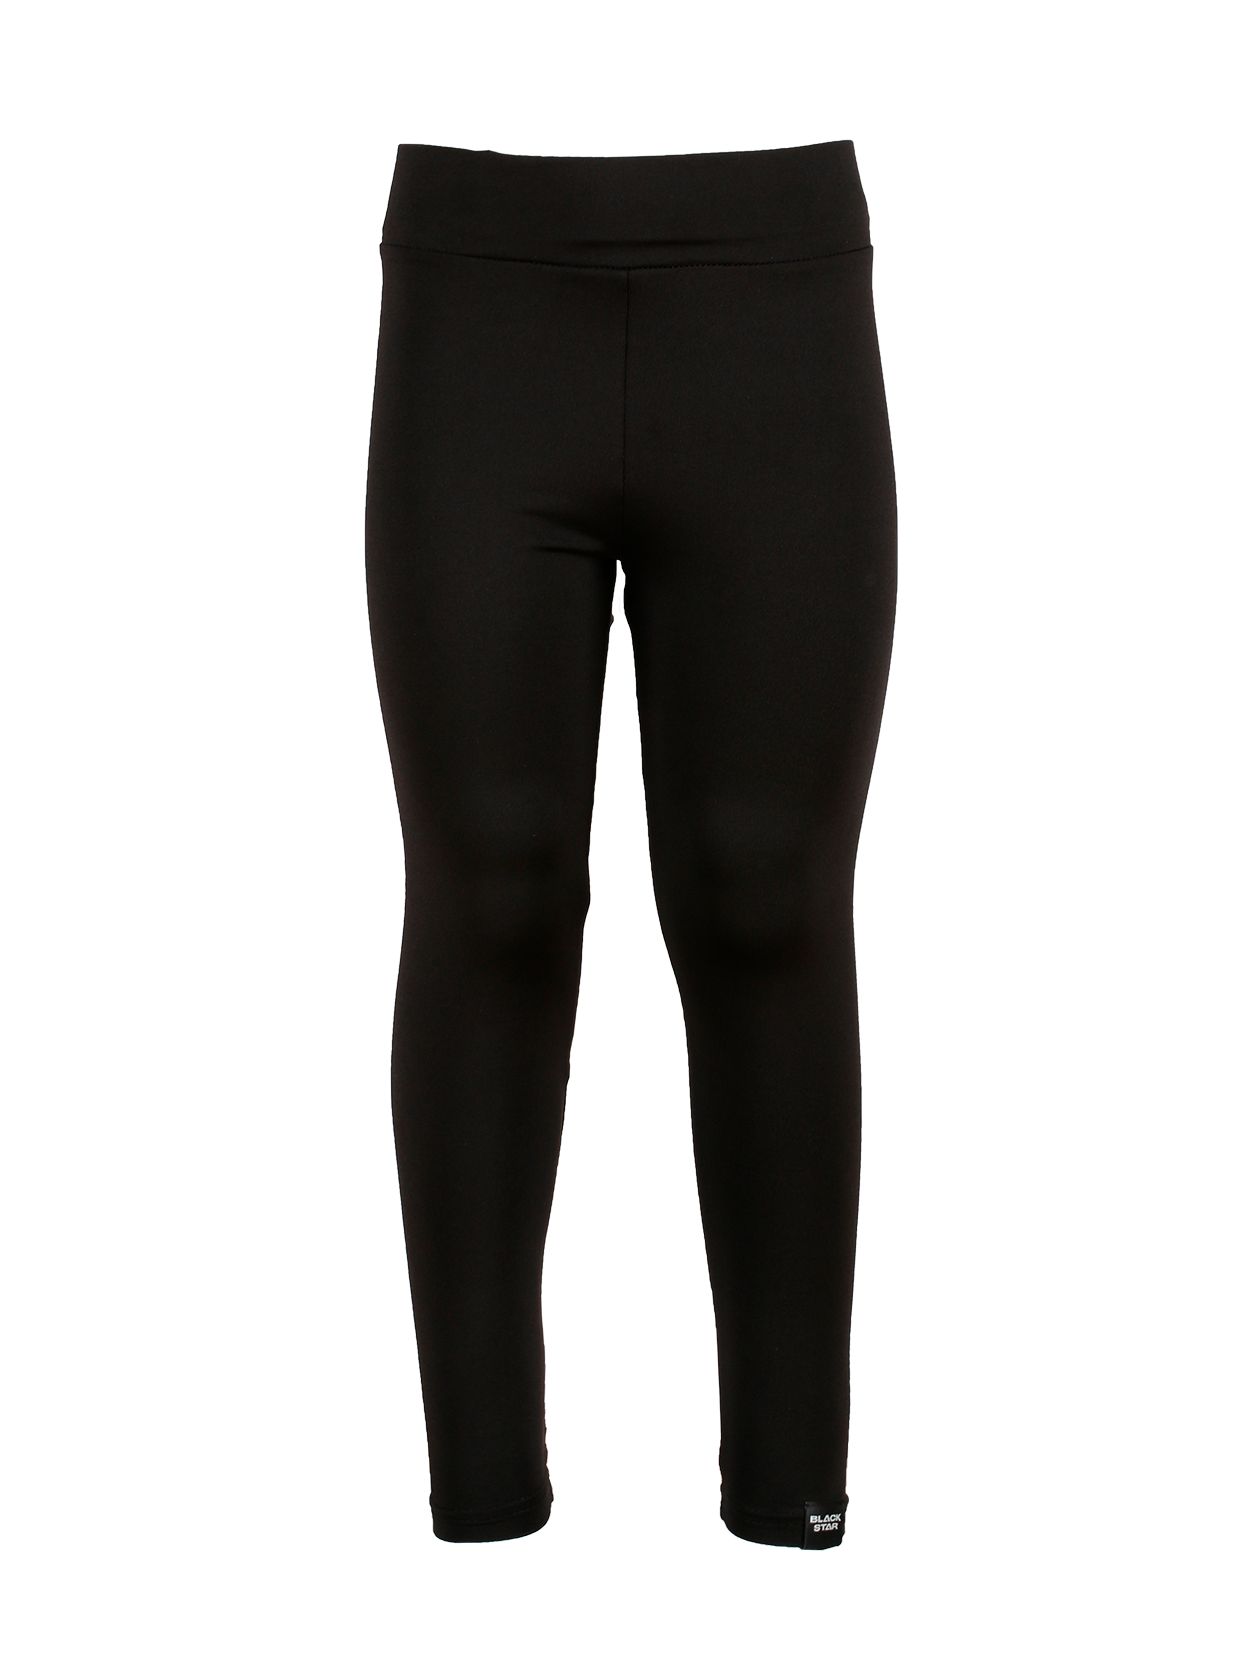 Teens leggings BLACK CLASSIC от BlackStarWear INT